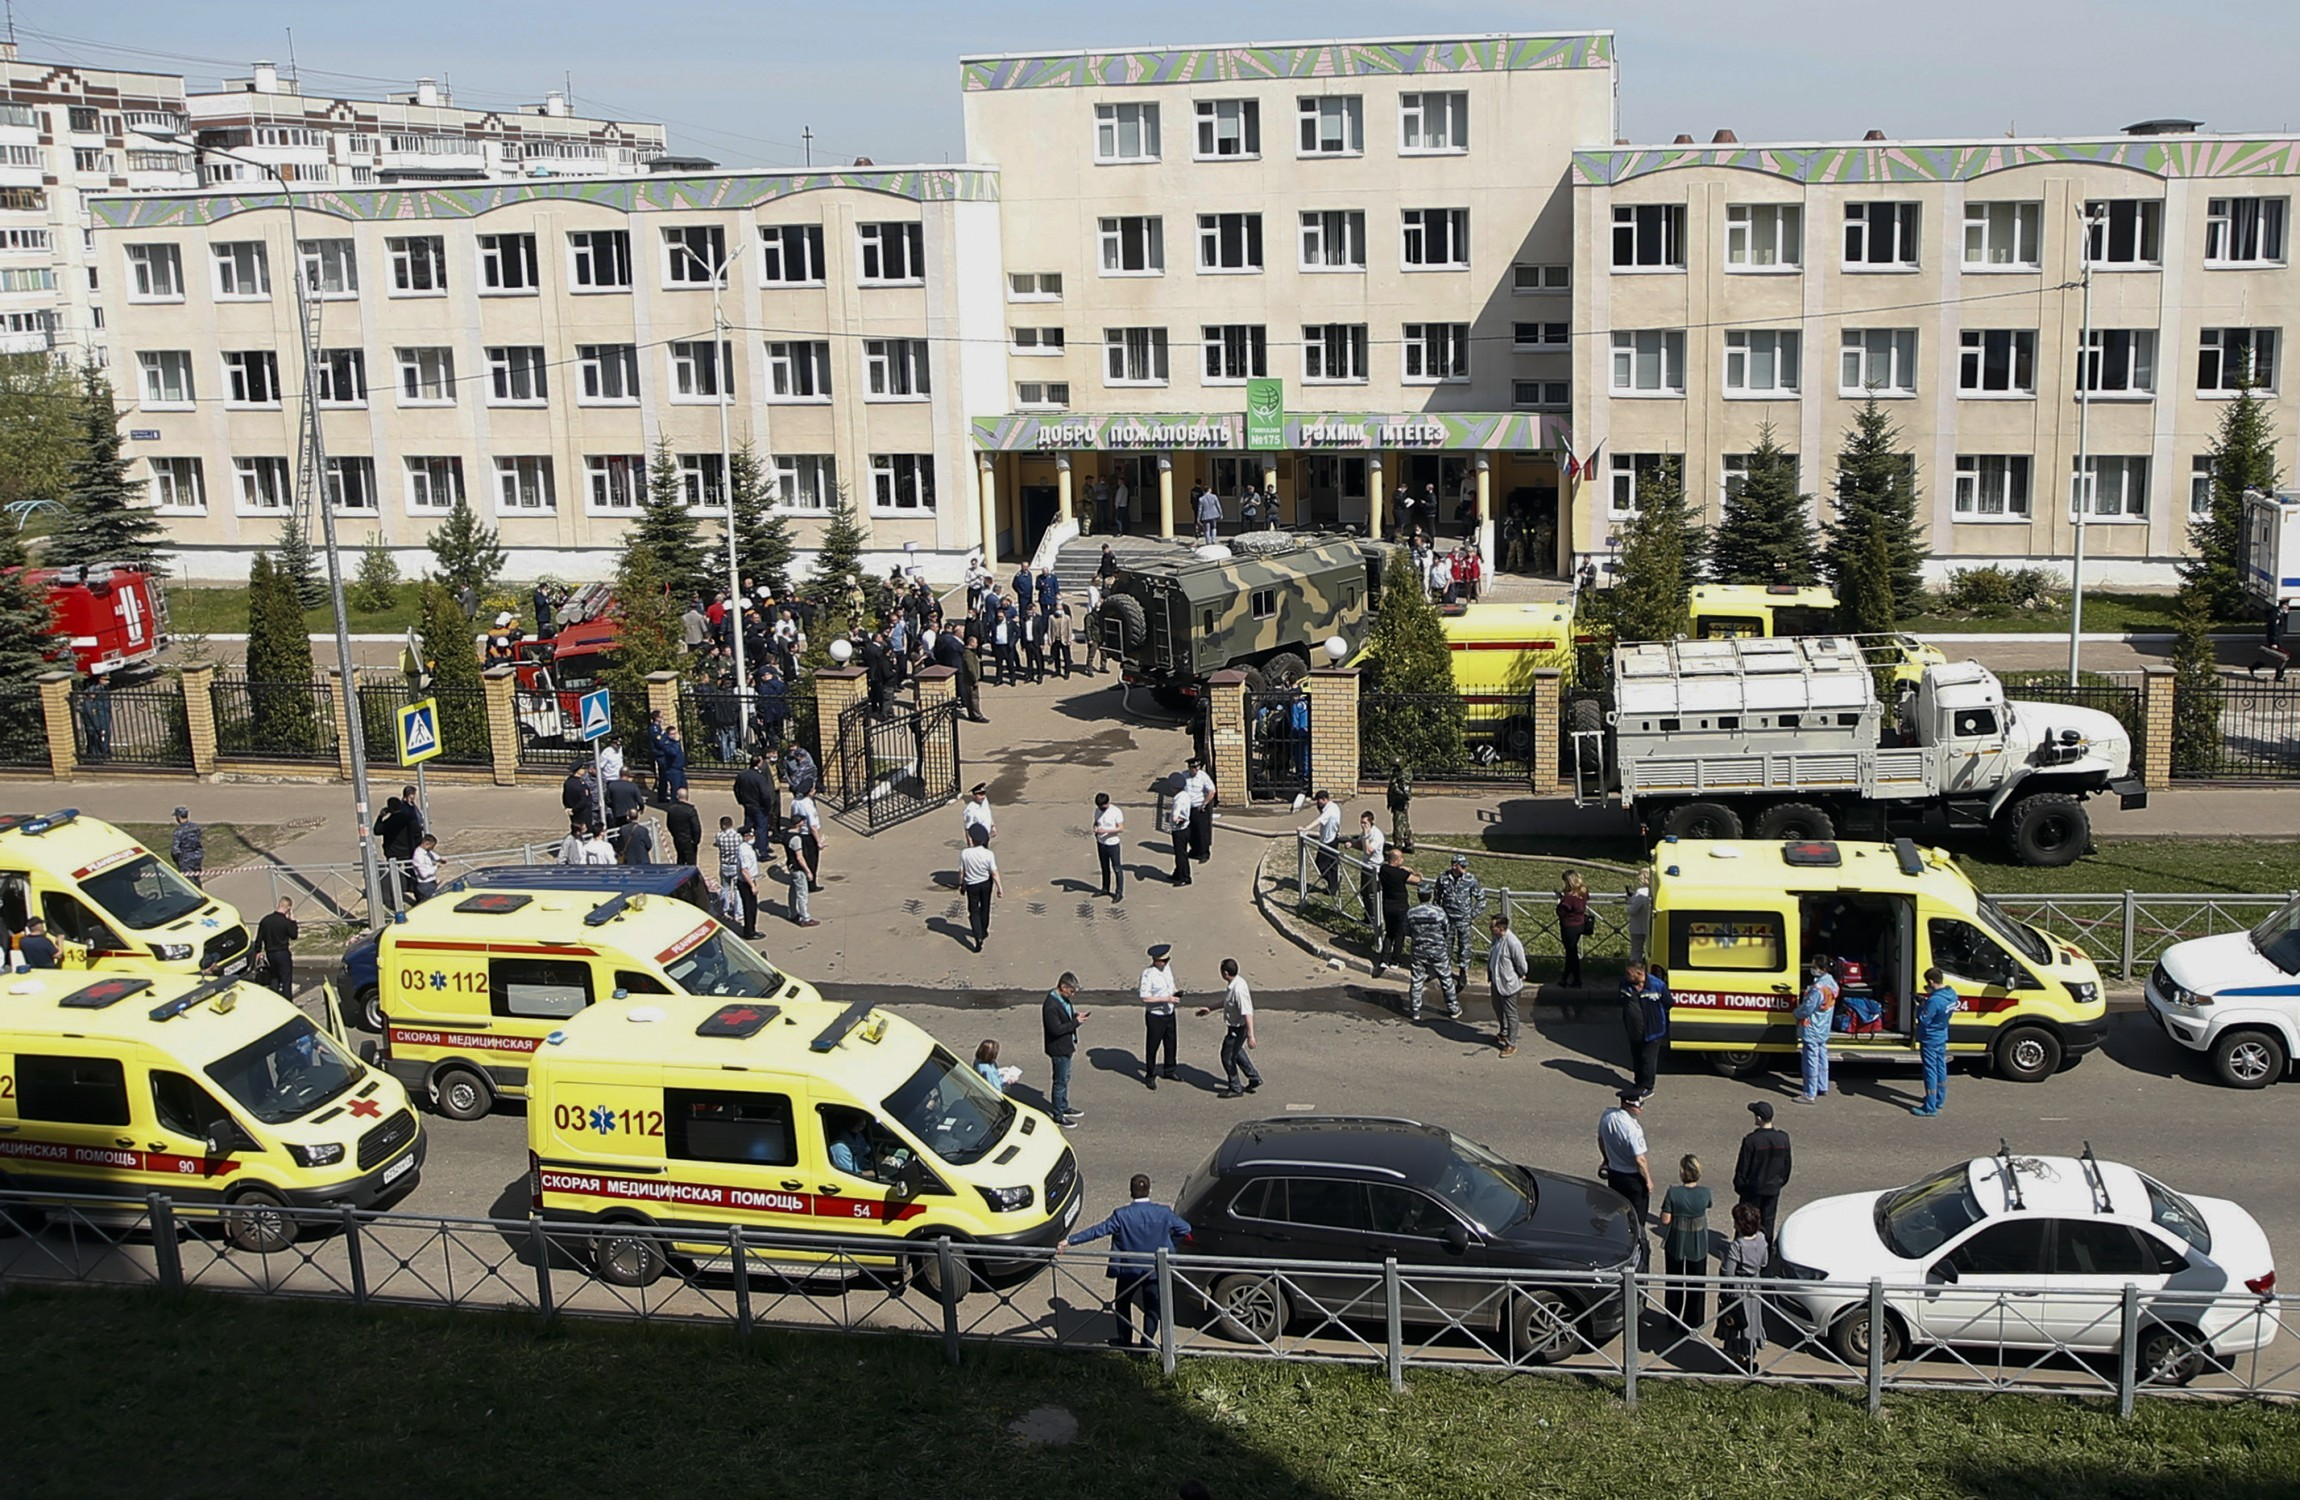 Russian Federation school shooting: At least 11 killed in attack, reports say